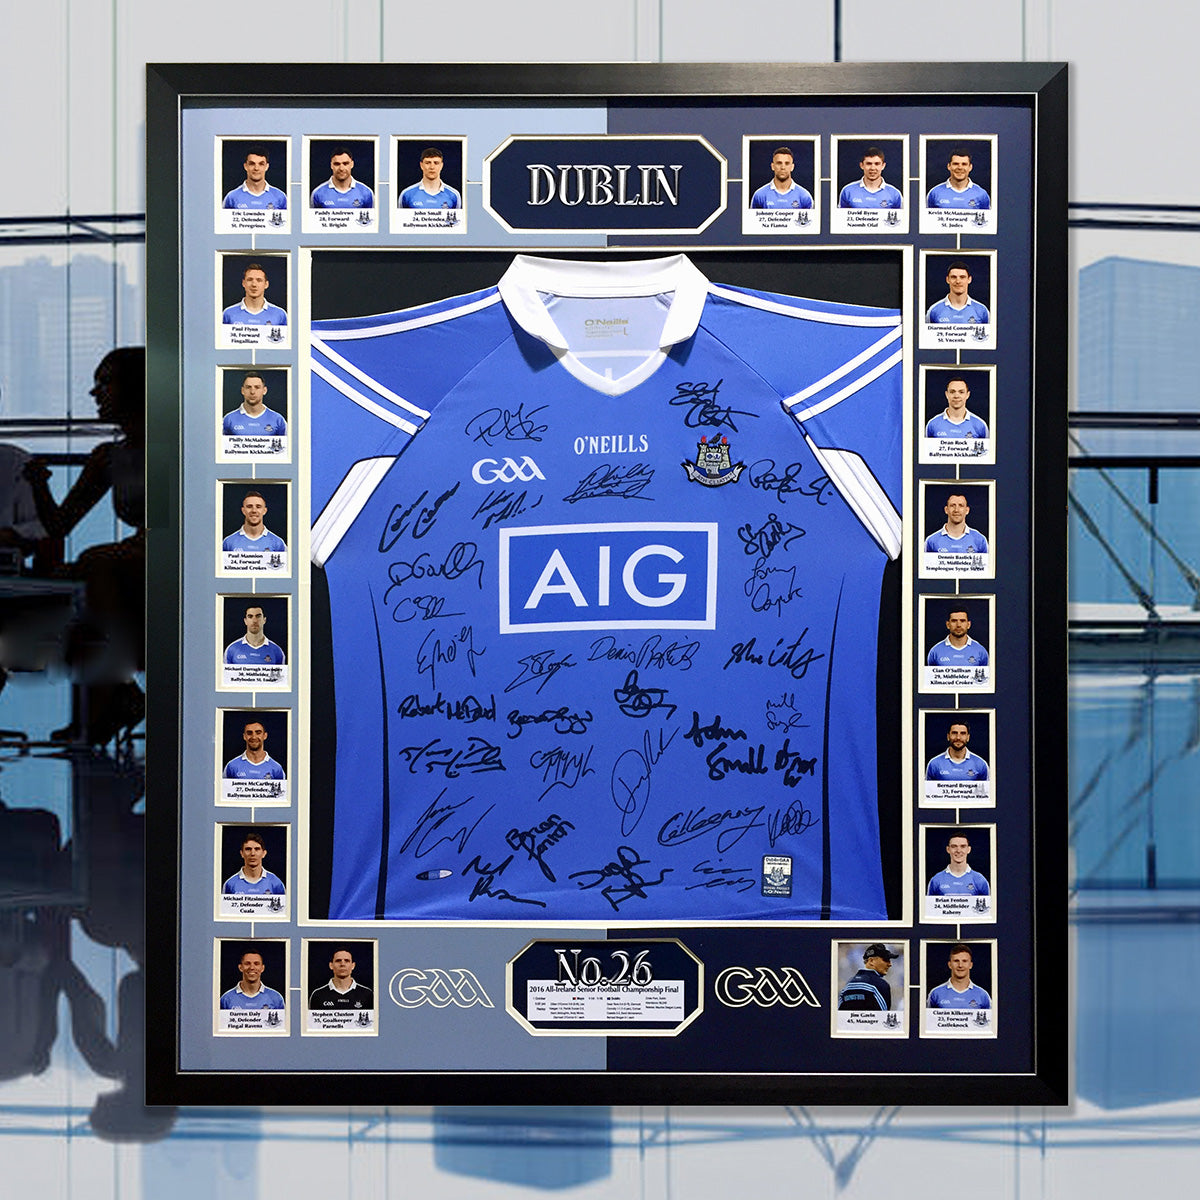 Dublin signed jersey framed - with players photos and captioning